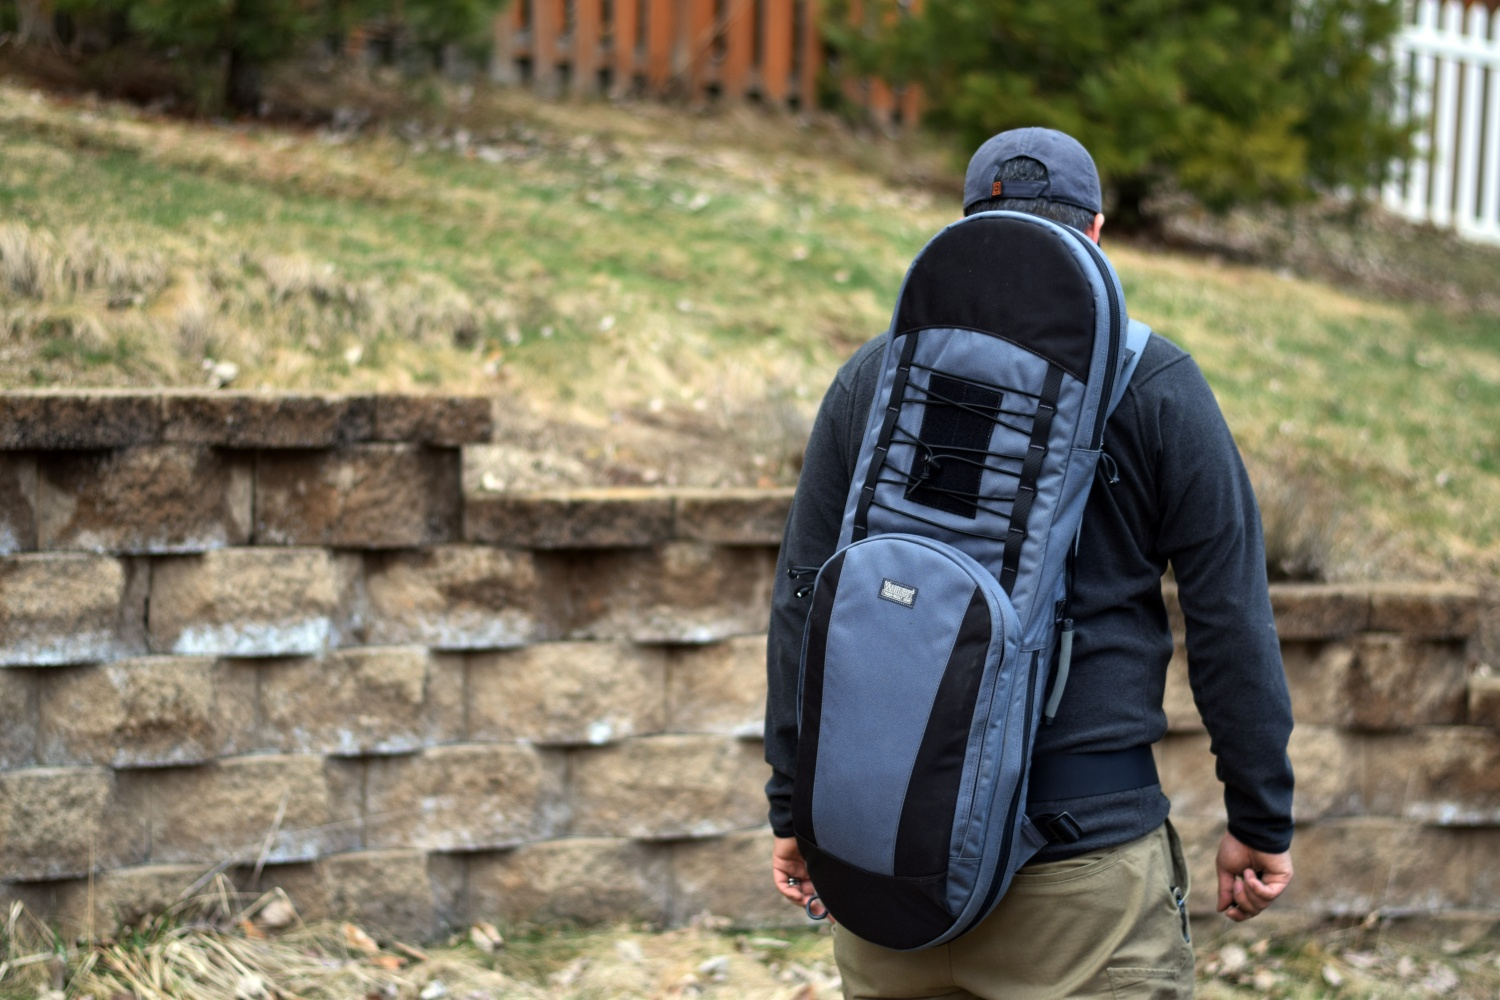 Gear Review Vanquest Rackit 36 Covert Rifle Bag The